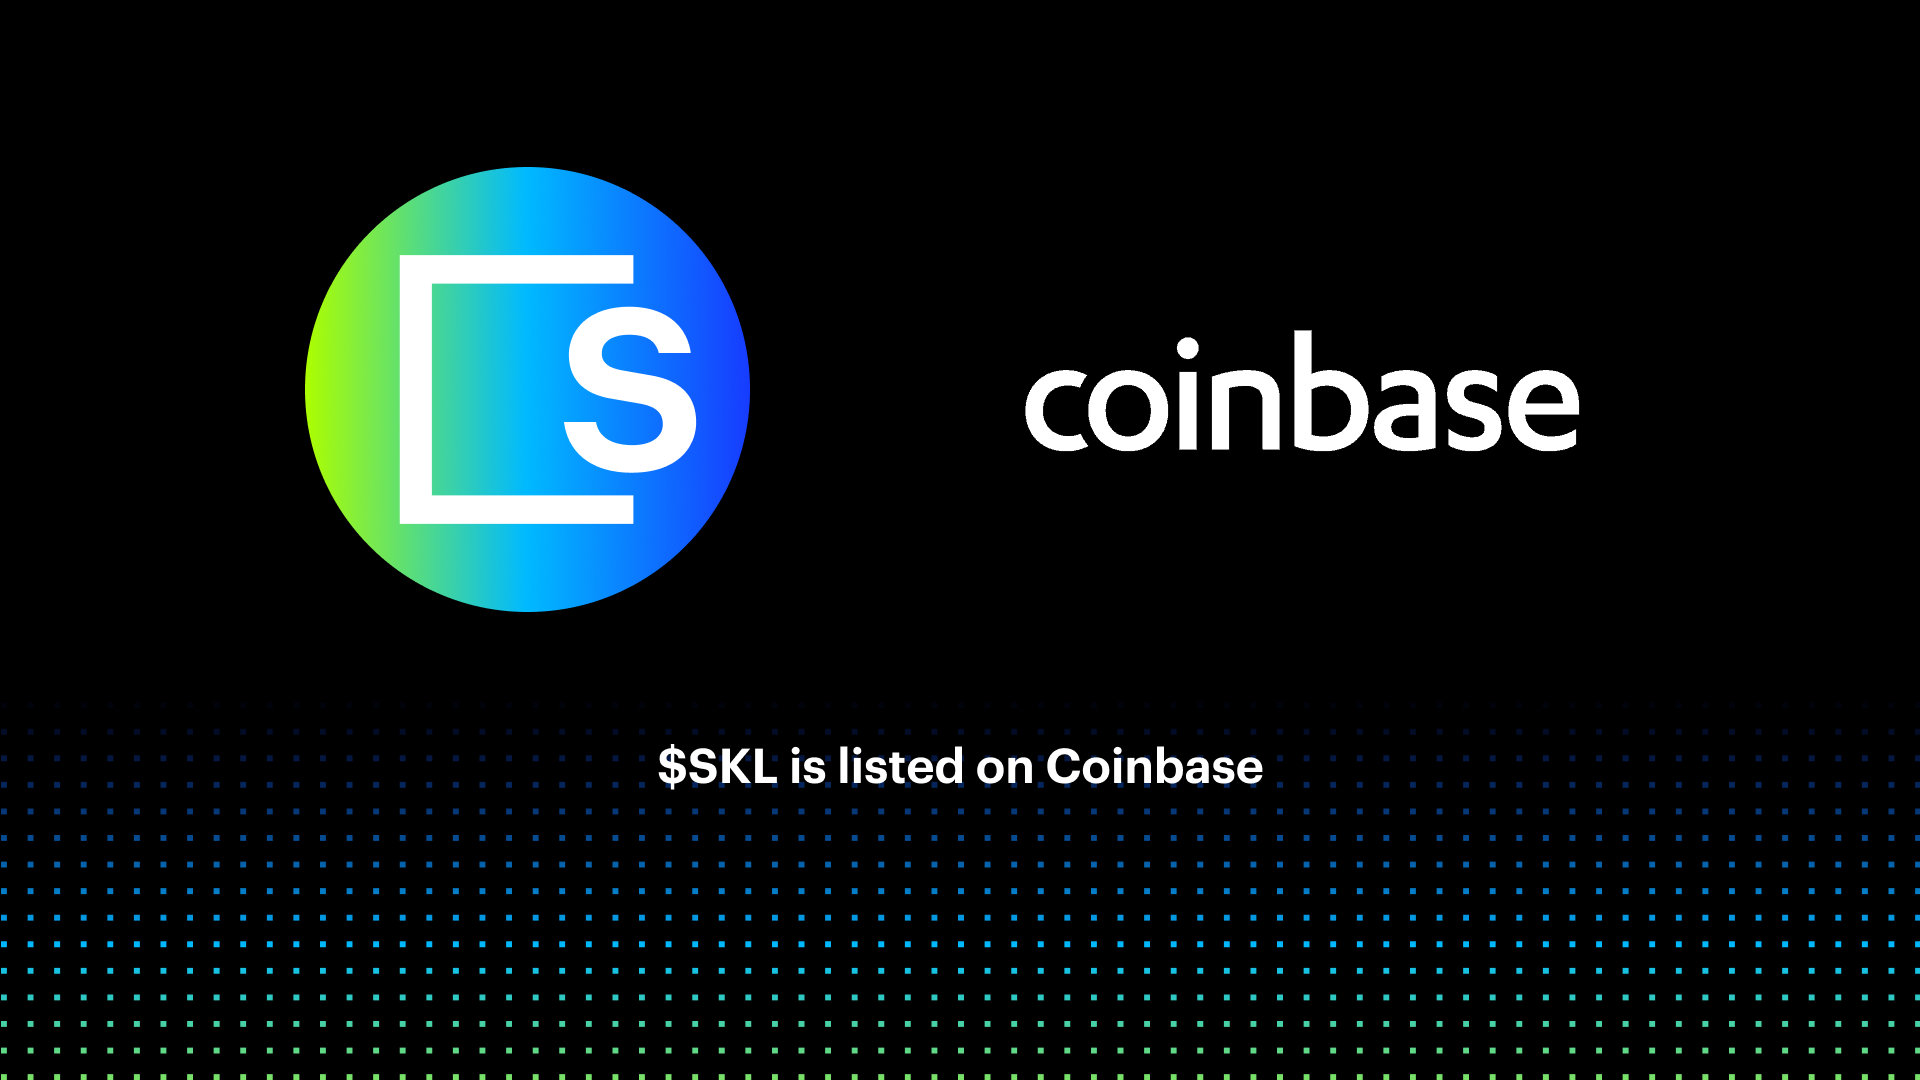 $SKL begins trading on Coinbase